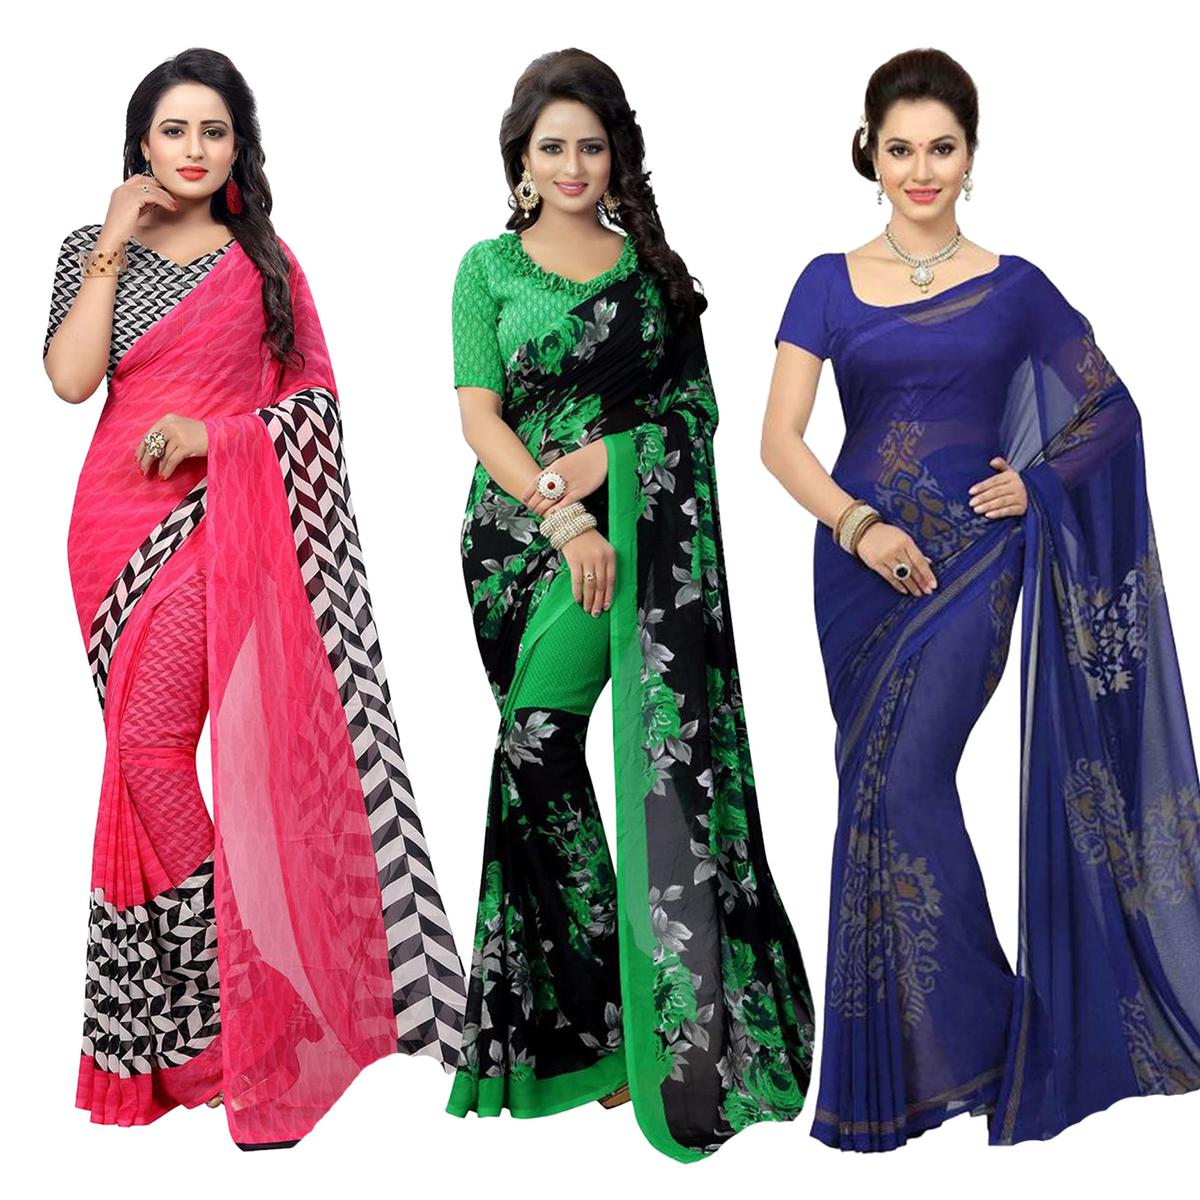 Radiant Casual Printed Georgette Saree - Pack of 3